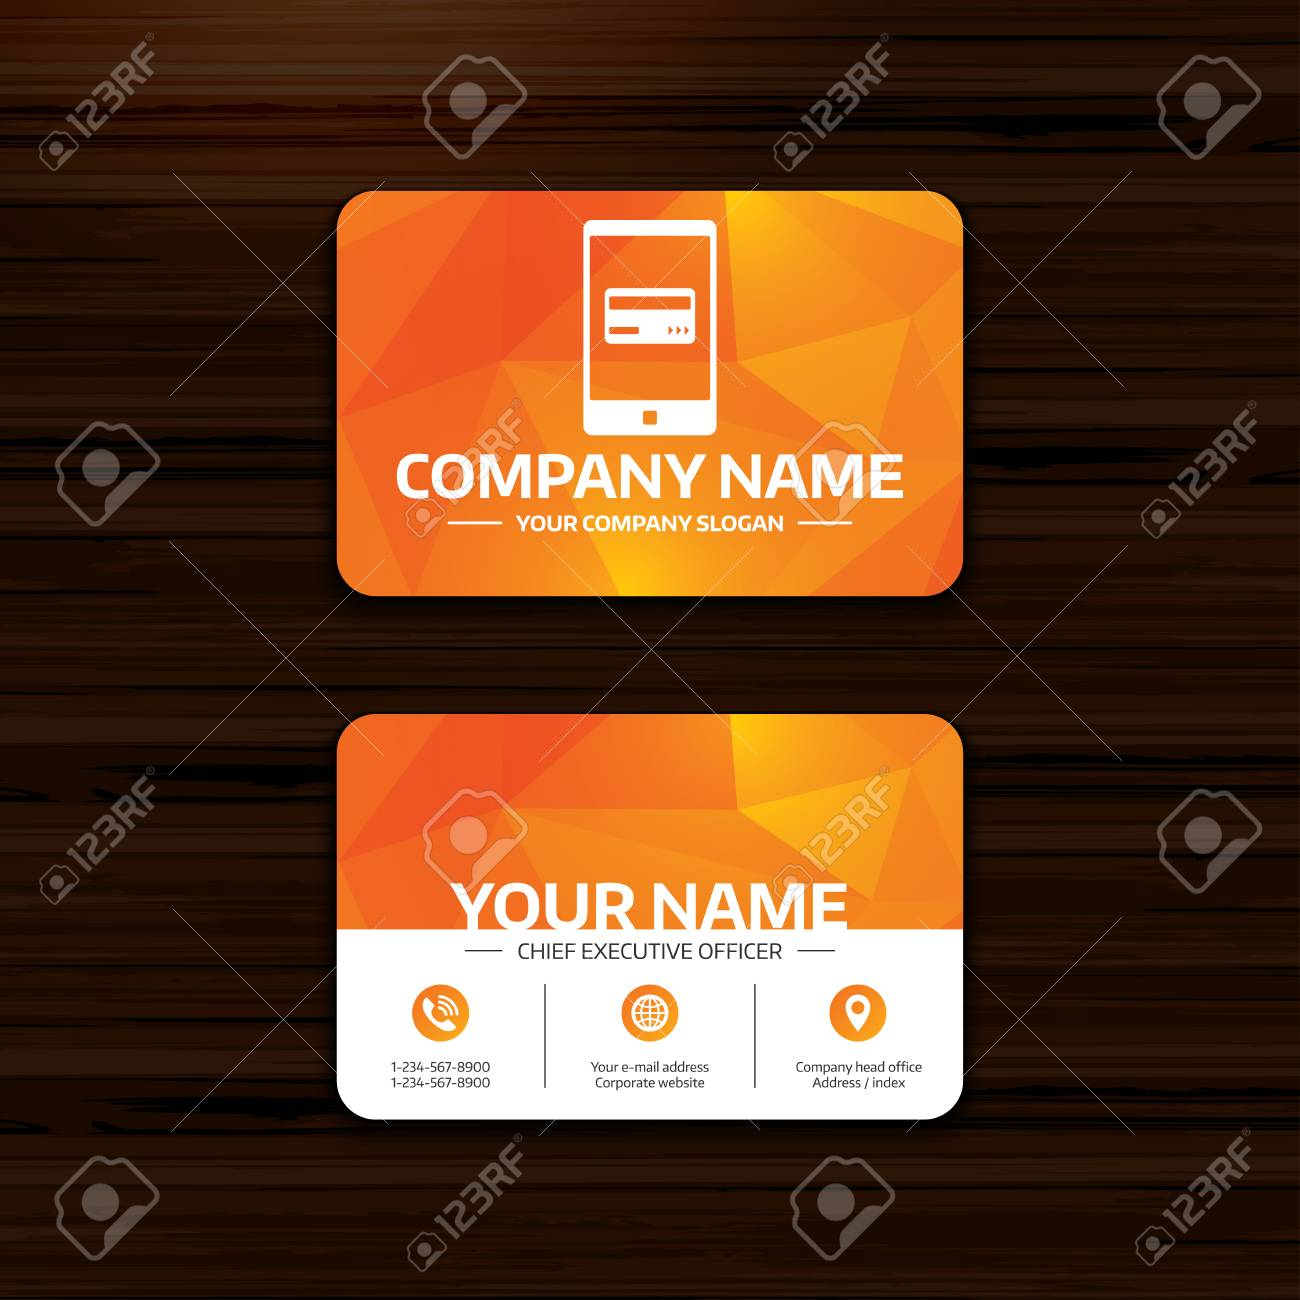 Business or visiting card template mobile payments icon smartphone business or visiting card template mobile payments icon smartphone with credit card symbol flashek Image collections